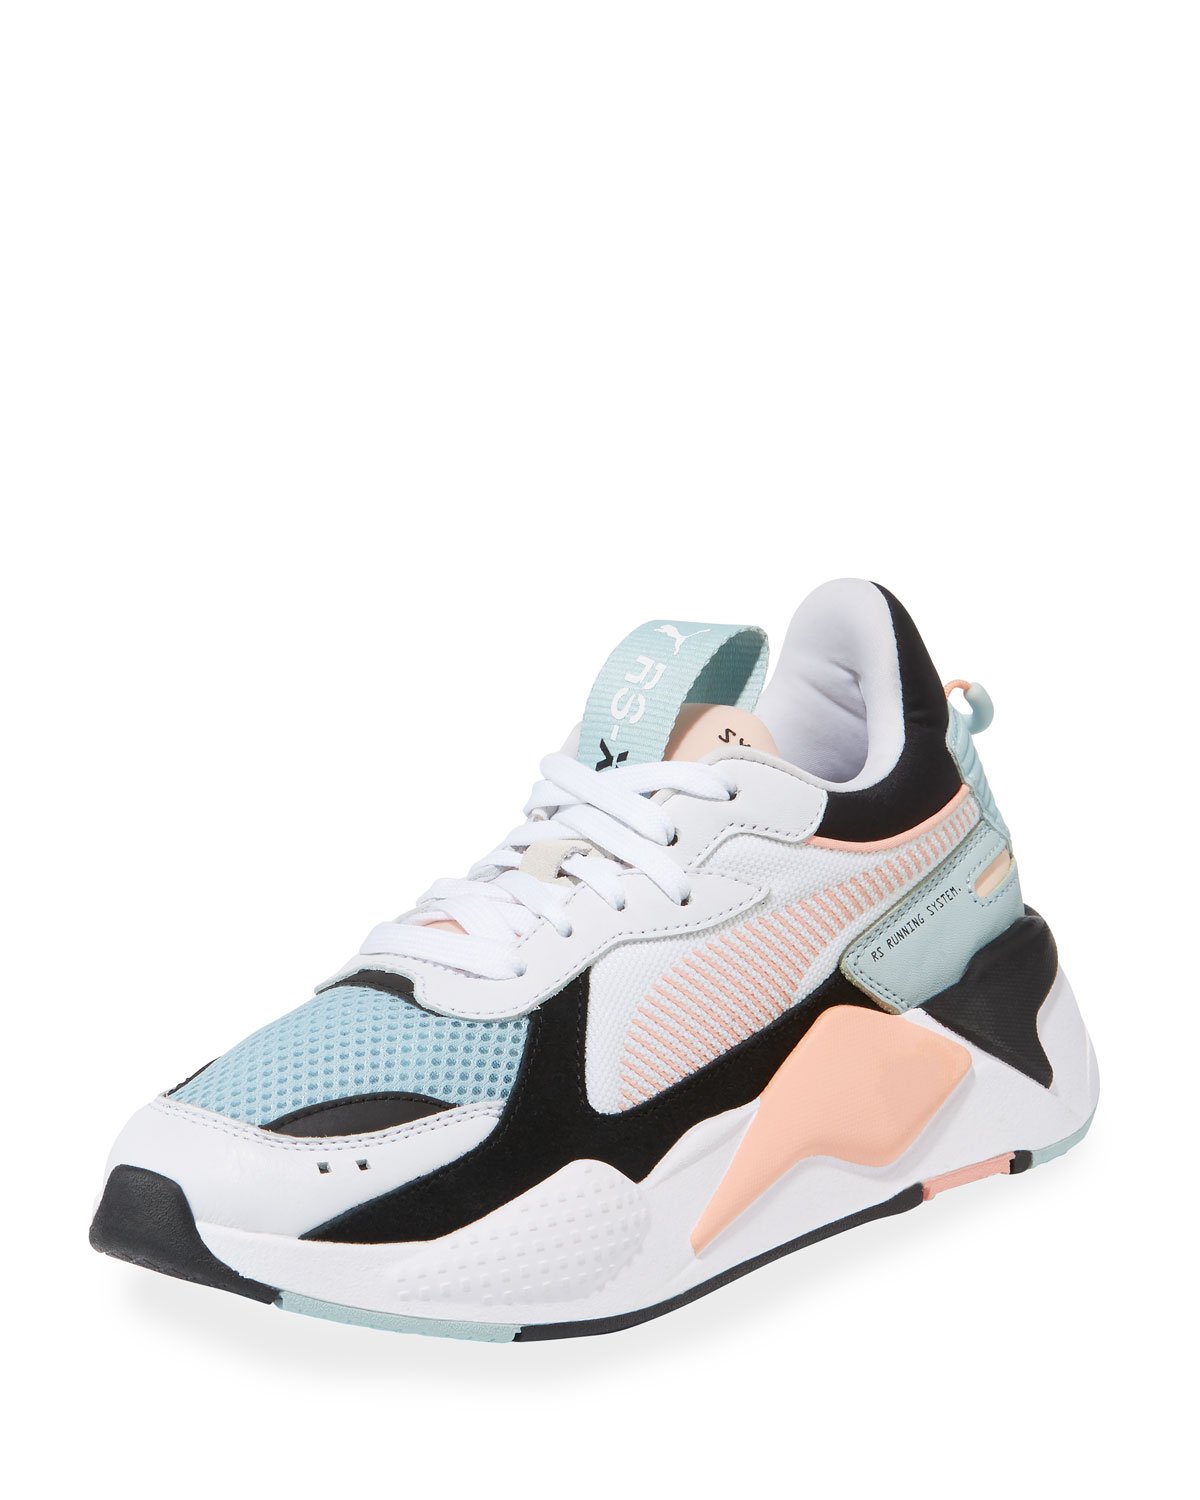 9ee90f256232 Puma RS-X Reinvention Dad Sneakers